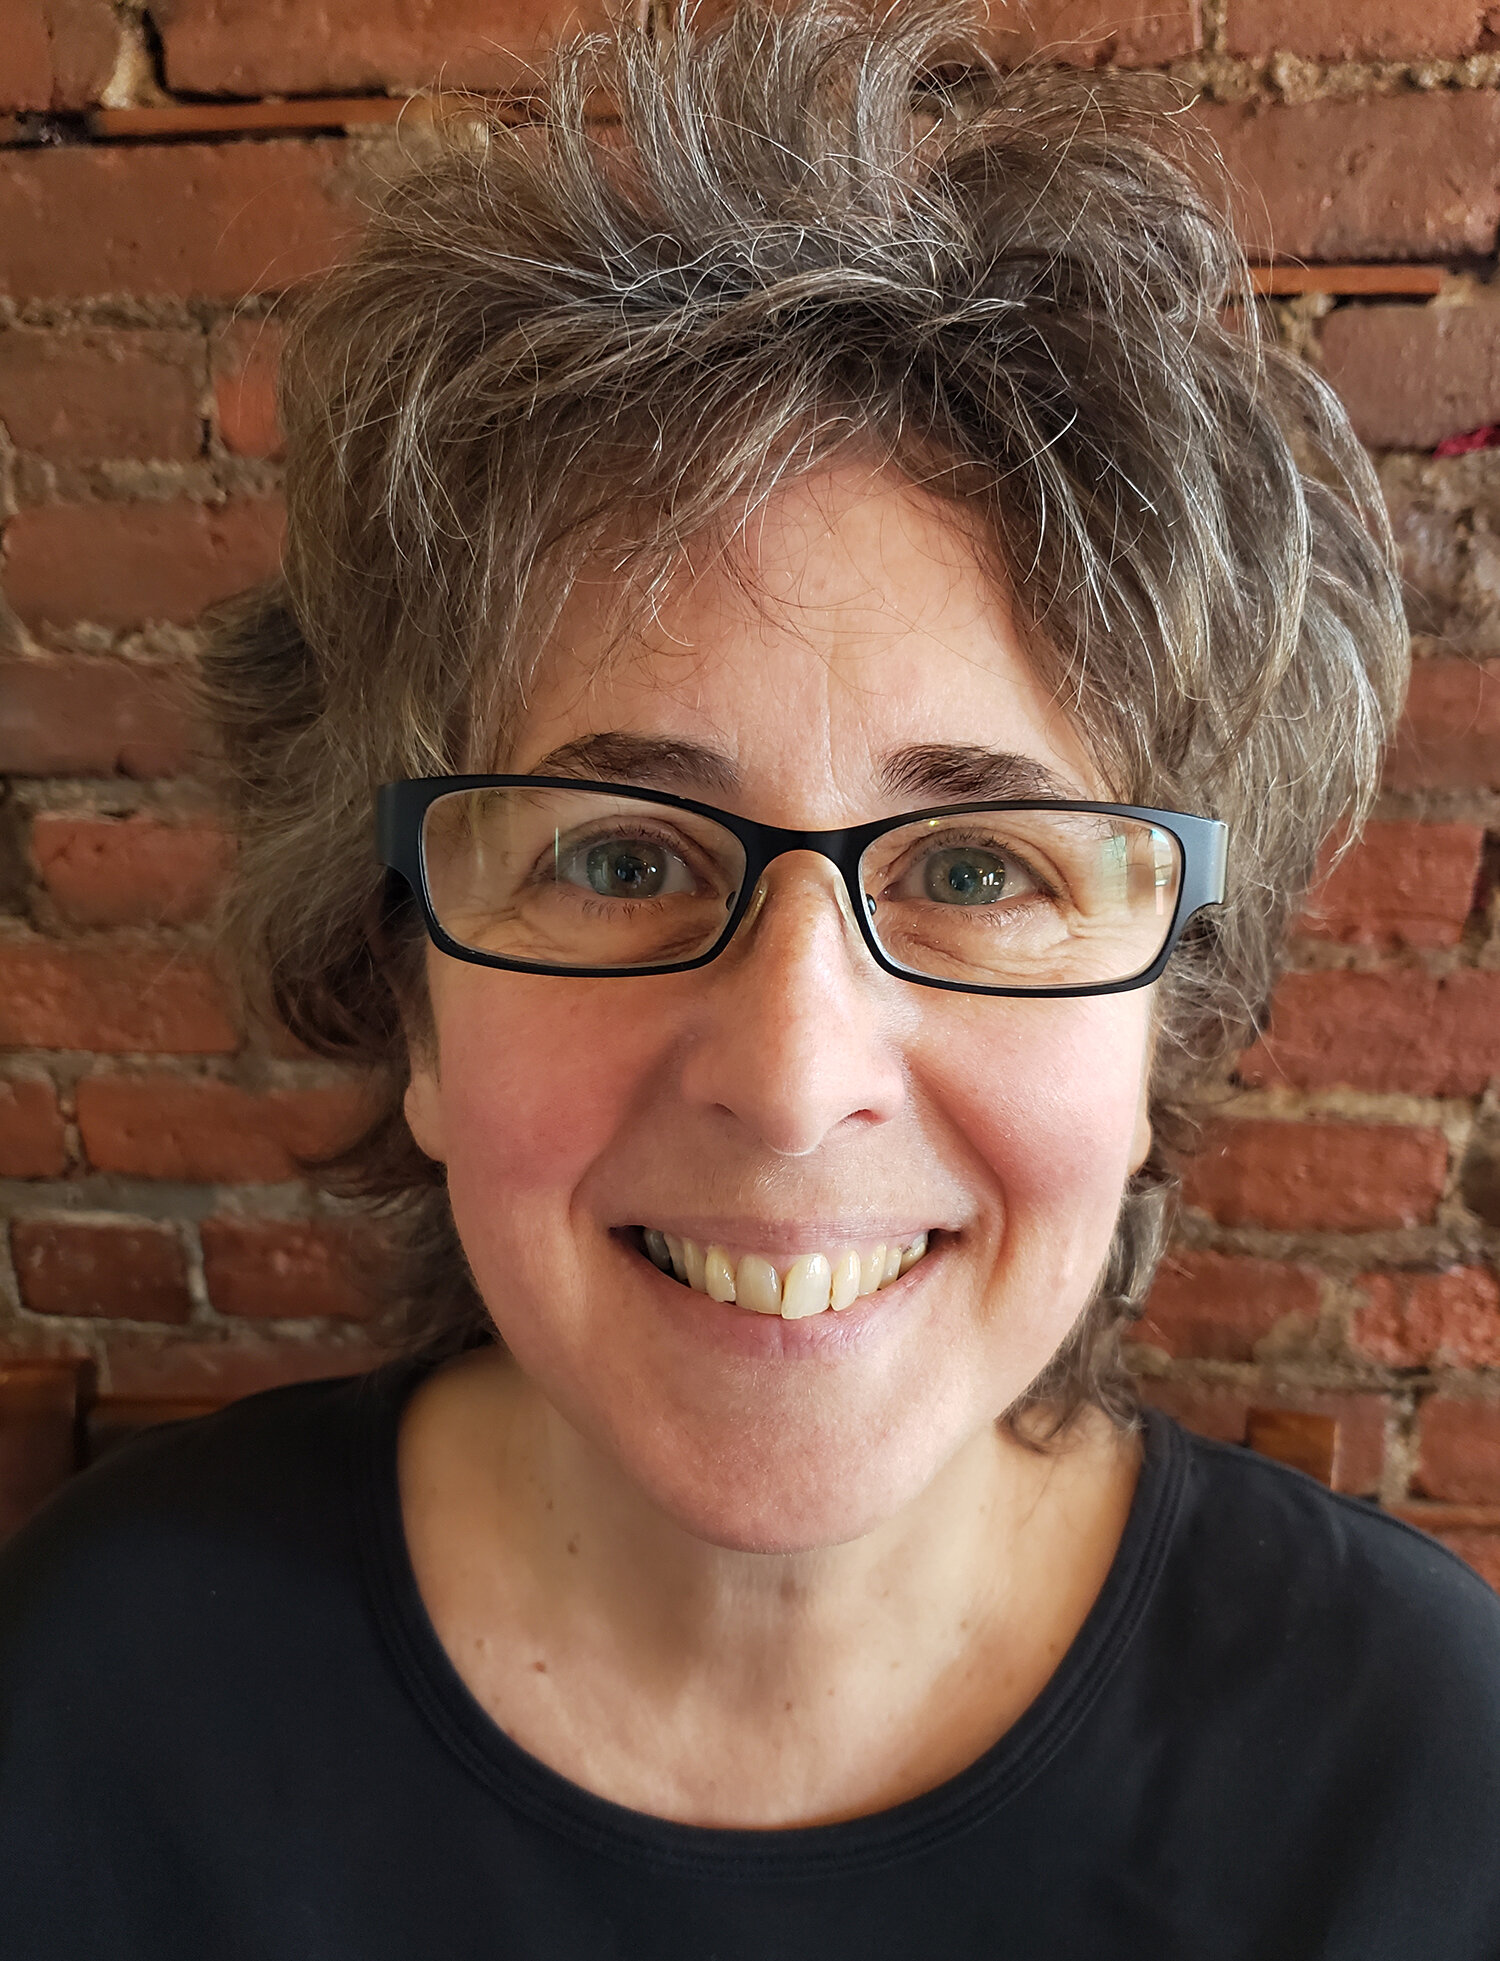 Donna Steiner - Donna Steiner's writing has been published in literary journals including The Sun, Fourth River, Radar Poetry, Under the Gum Tree, Brevity, and Stone Canoe. She teaches at the State University of New York. A chapbook, Elements, was released by Sweet Publications.